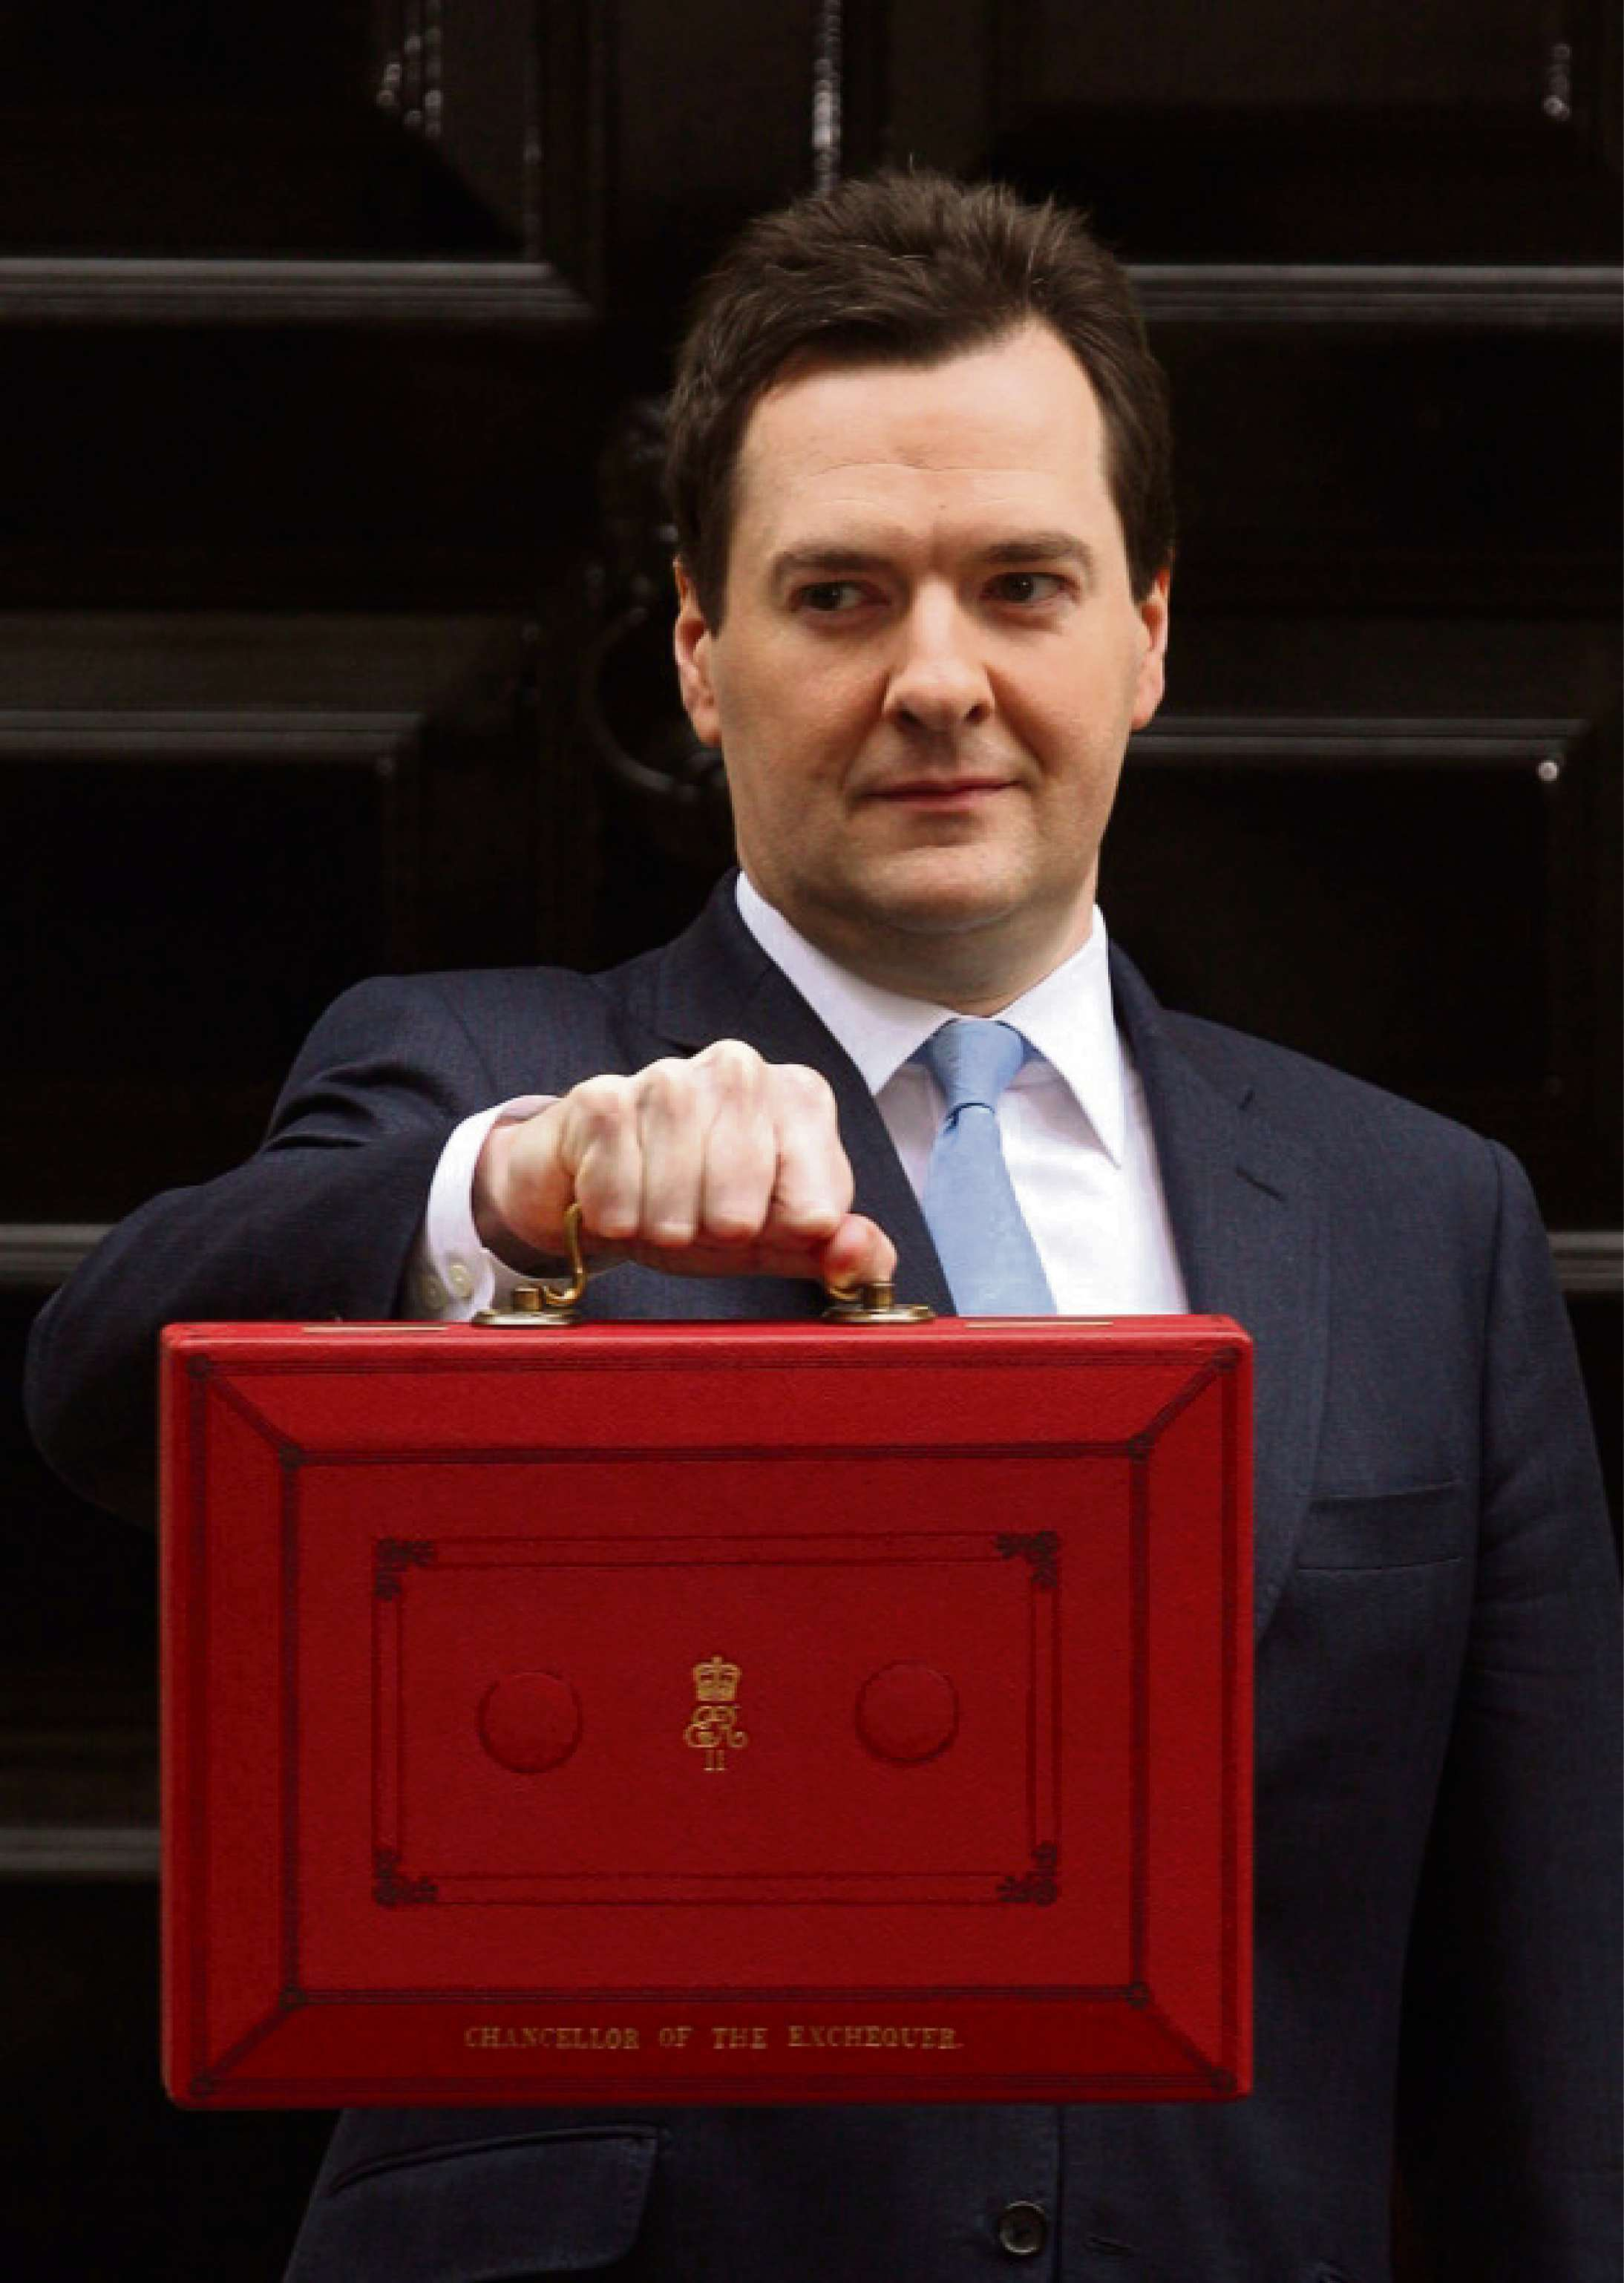 Good news for region's manufacturers as Chancellor delivers on his word